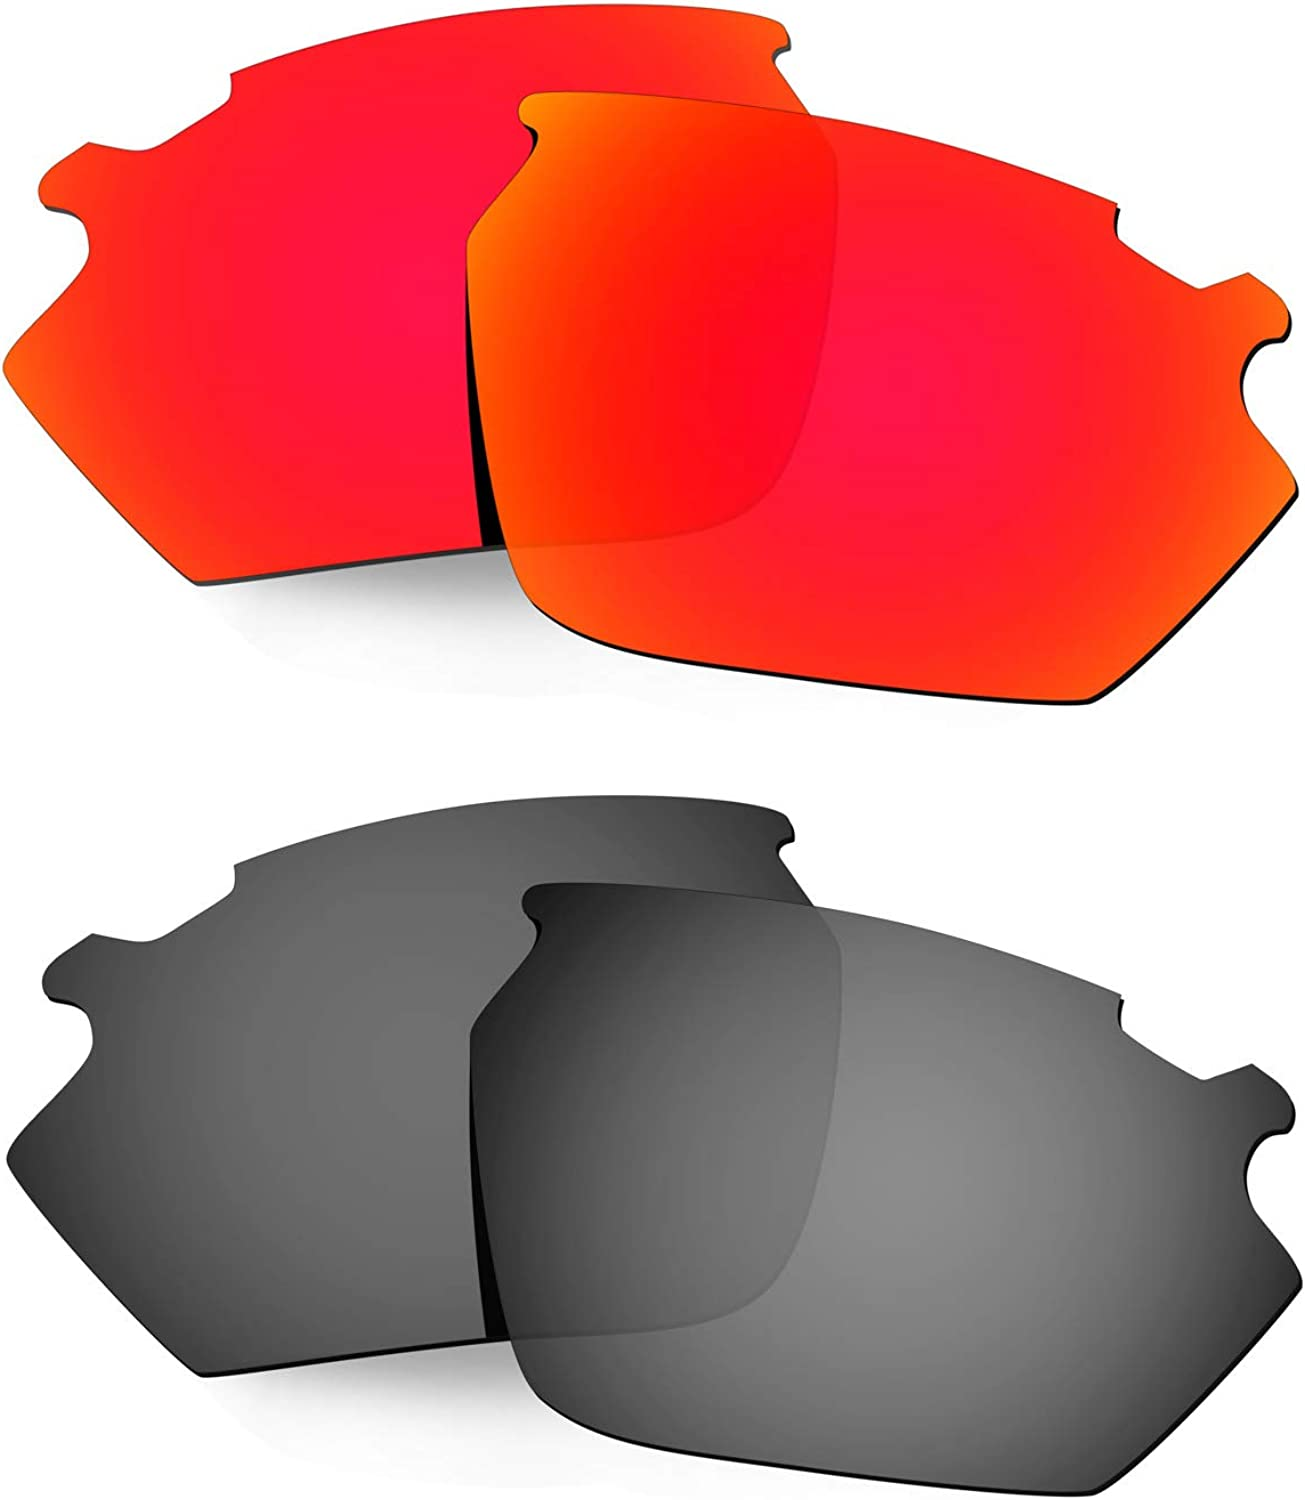 HKUCO Reinforce Replacement Lenses for Rudy Stratofly Red Black Sunglasses